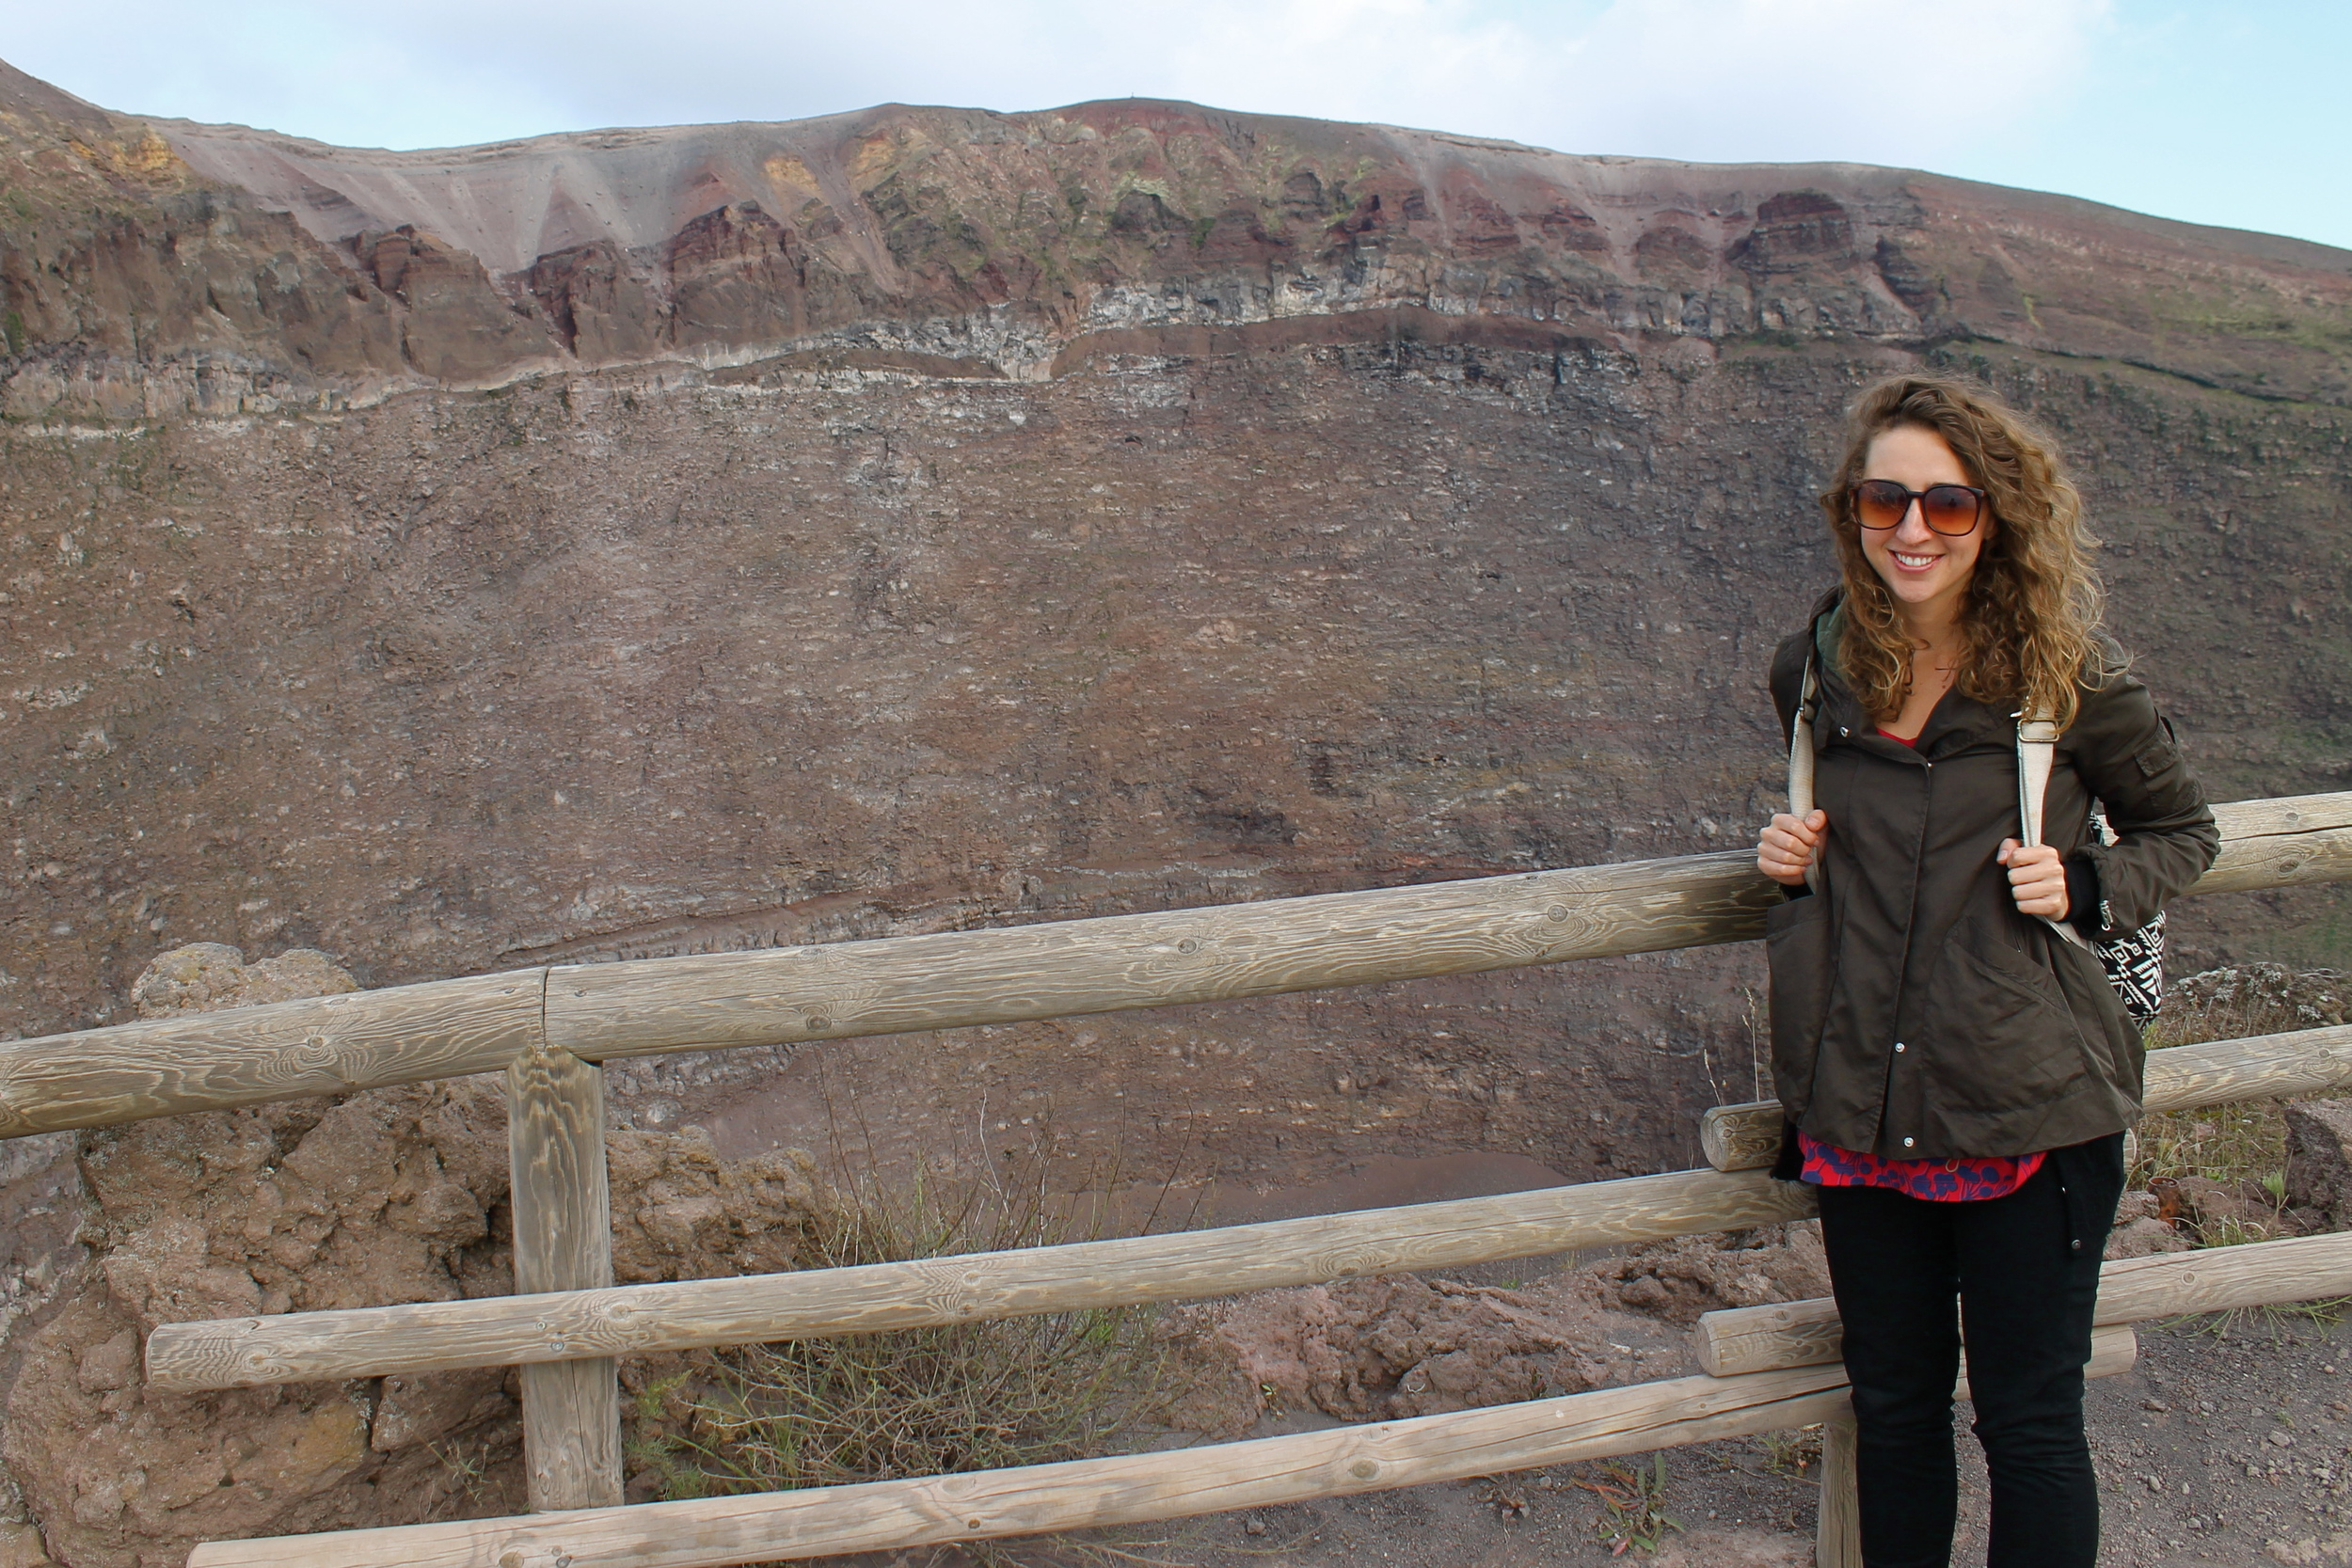 Now, here I am on the top of Vesuvius.